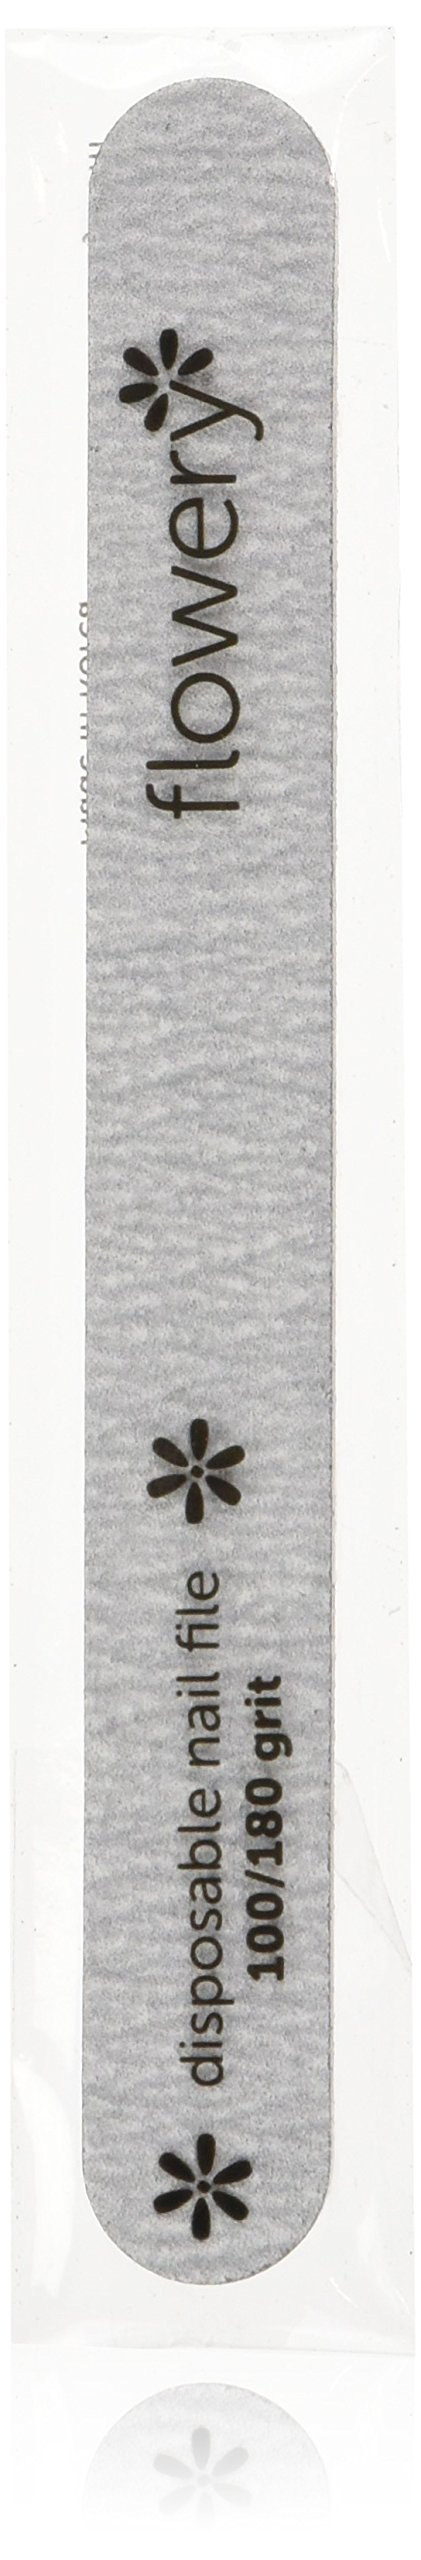 Flowery Disposable Nail File Cushion Core 100/180 Grit, Silver, Pack of 100 by Flowery